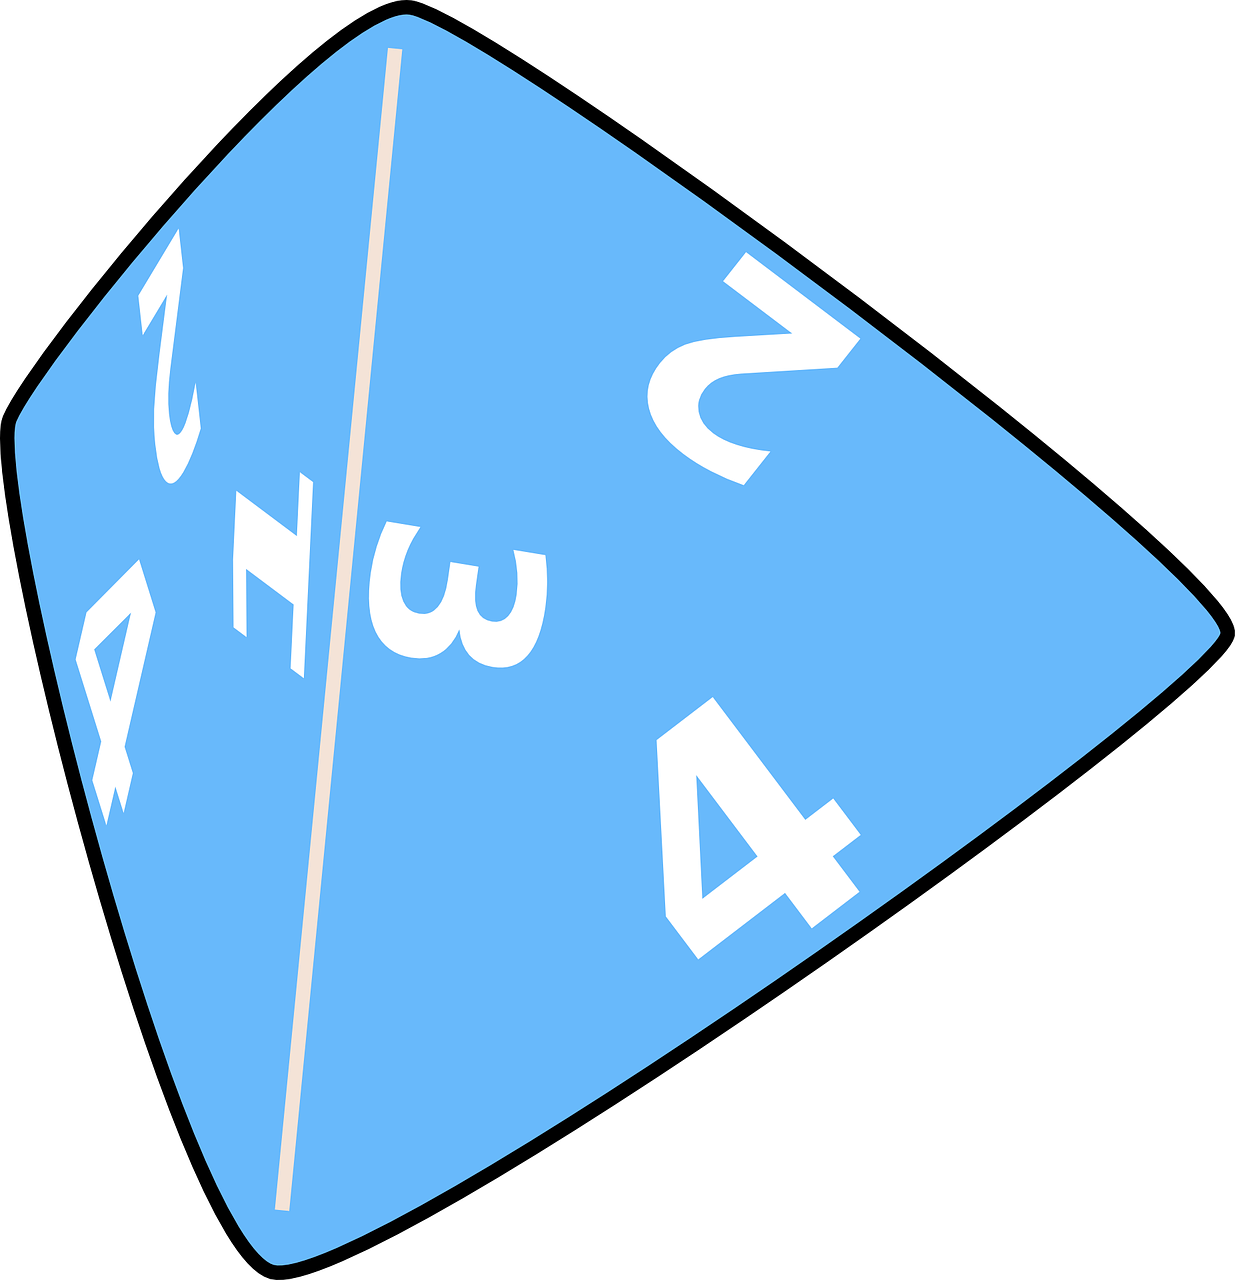 triangle-47852_1280.png